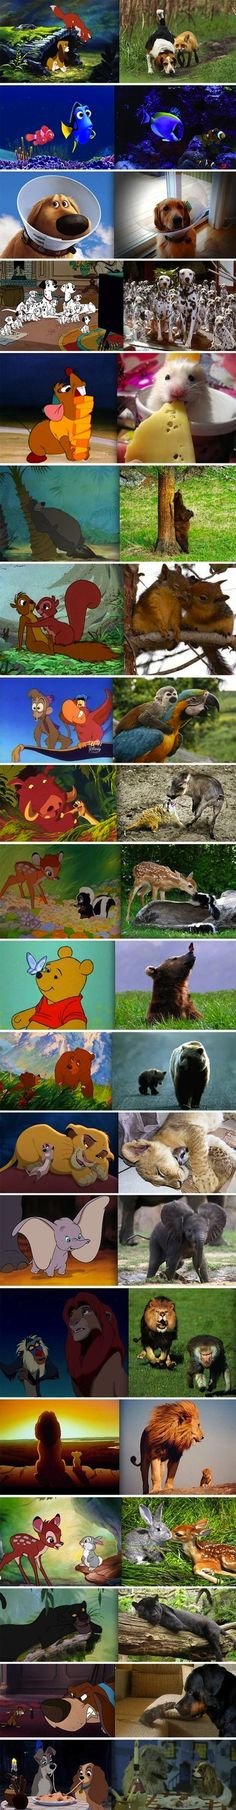 Disney Characters in Real Life   Things for Geeks